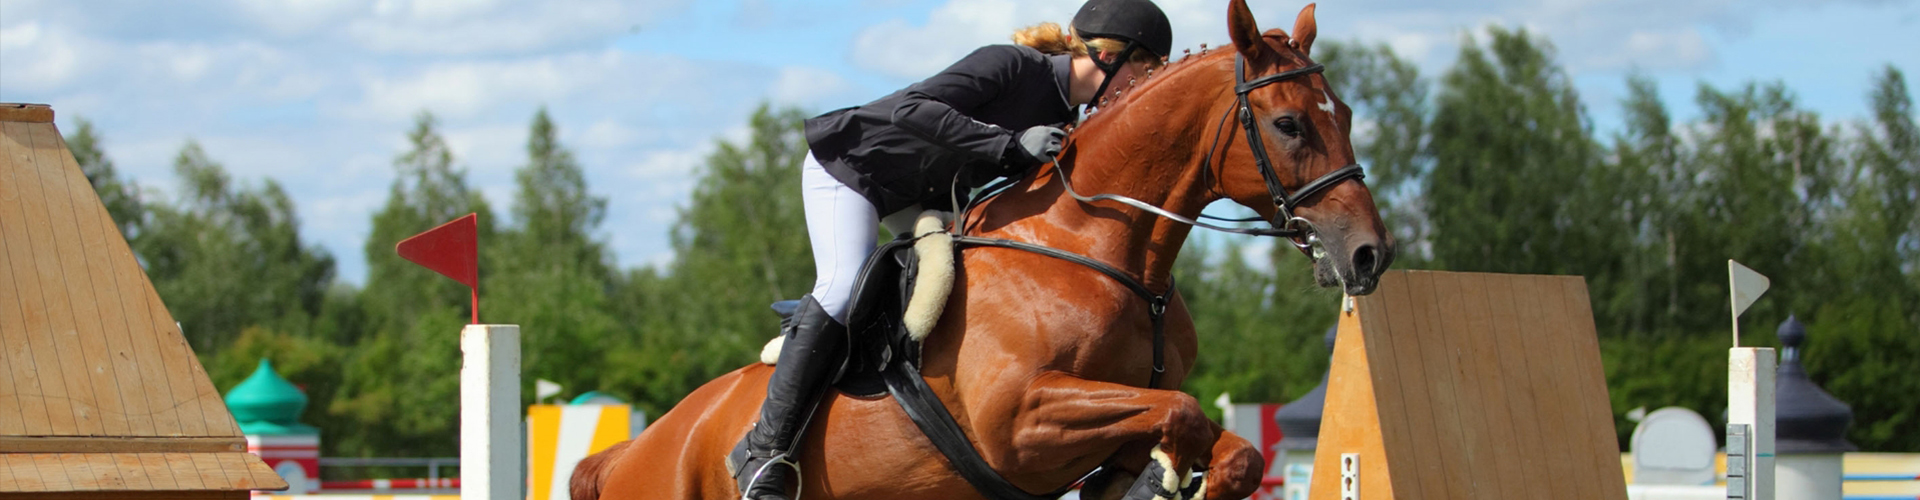 An image of a horse taking part in an event